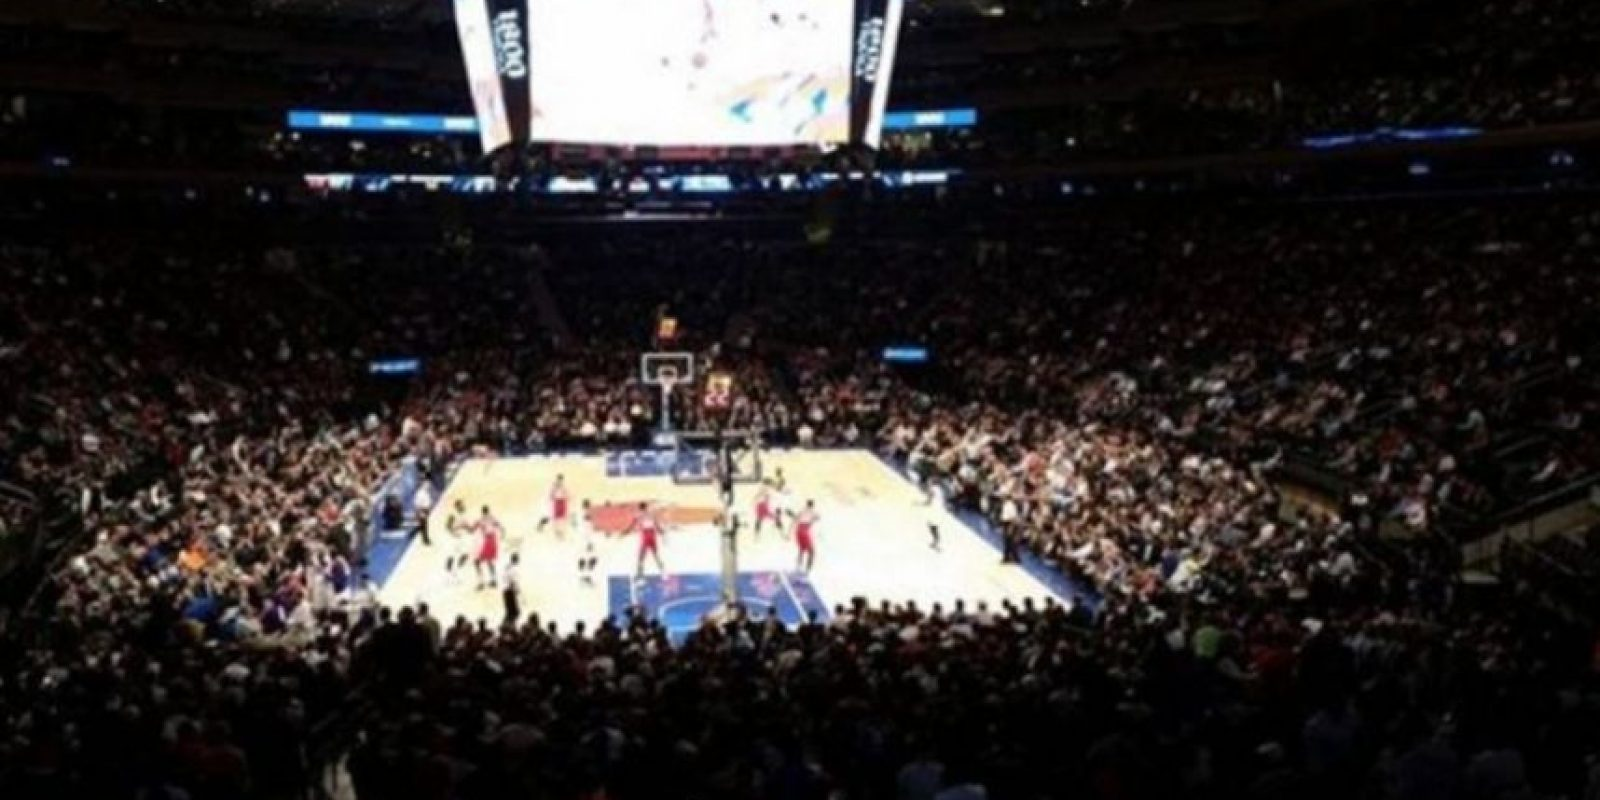 Madison Square Garden en Nueva York, Estados Unidos. Foto: vía instagram.com/peter.murray127